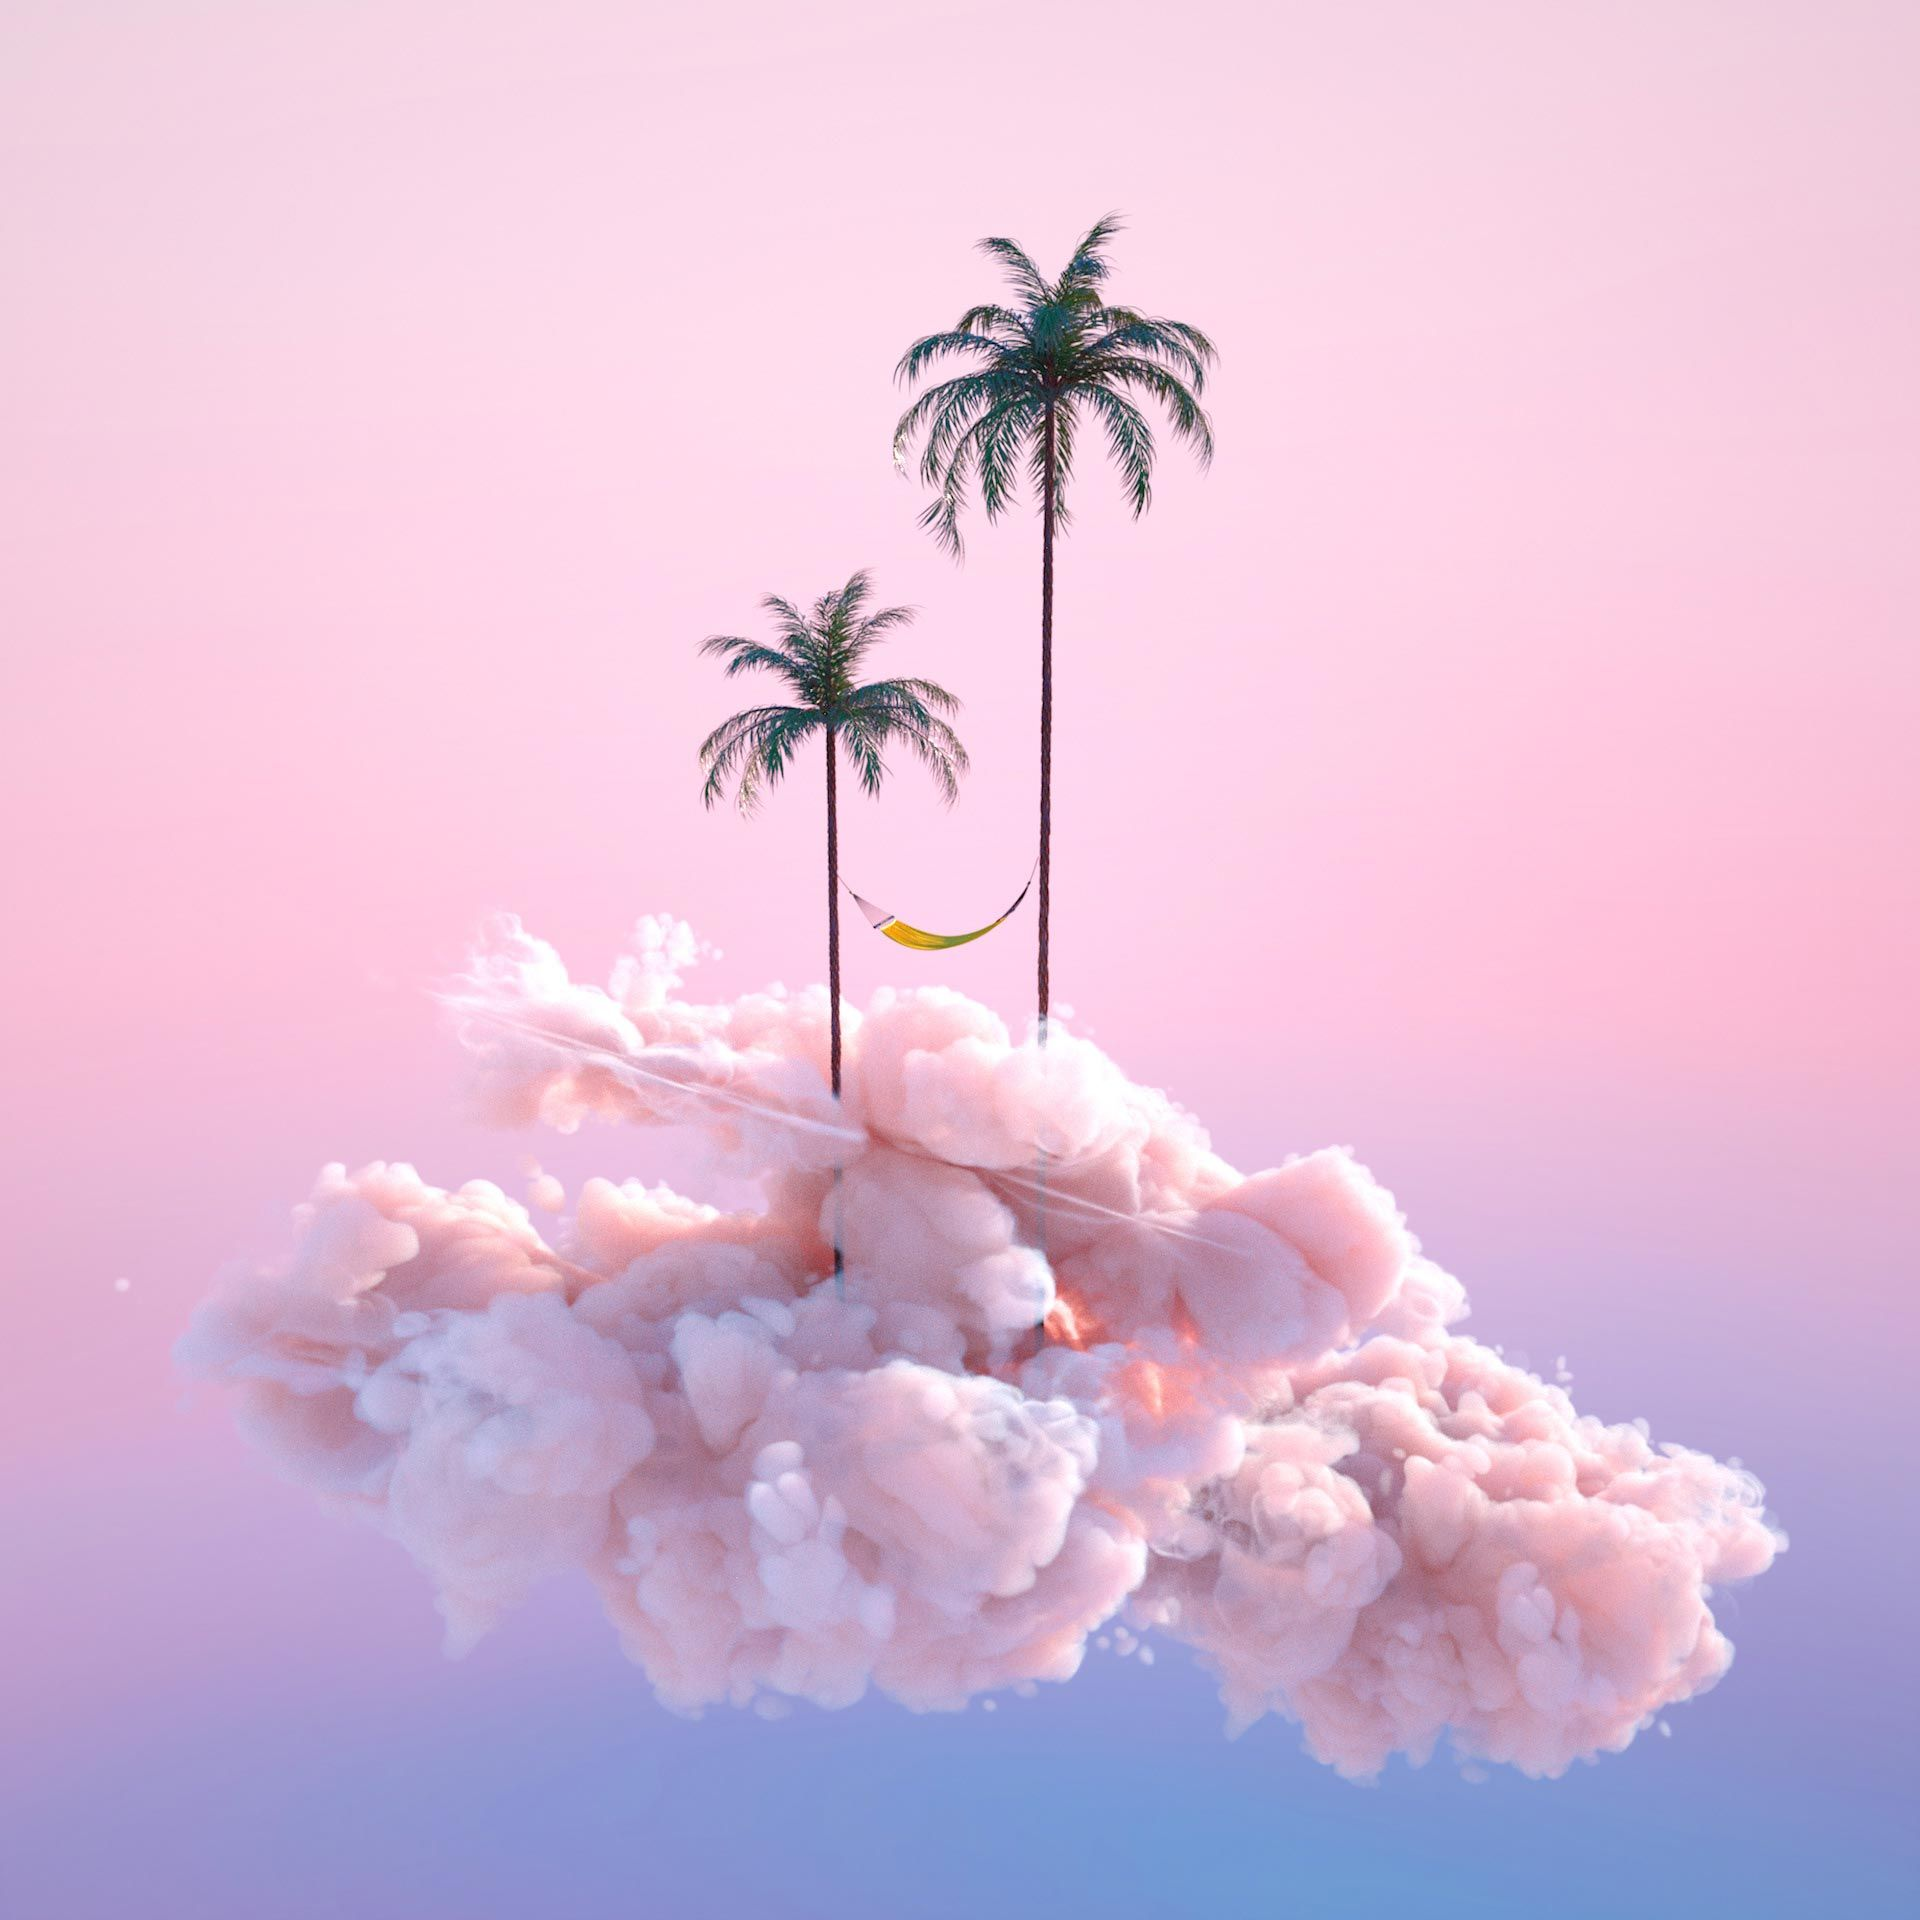 Barcelona-based digital artist Maciek Martyniuk's (aka Yomagick) 'Dreamlands' series came from his latest trip to Japan where he discovered the